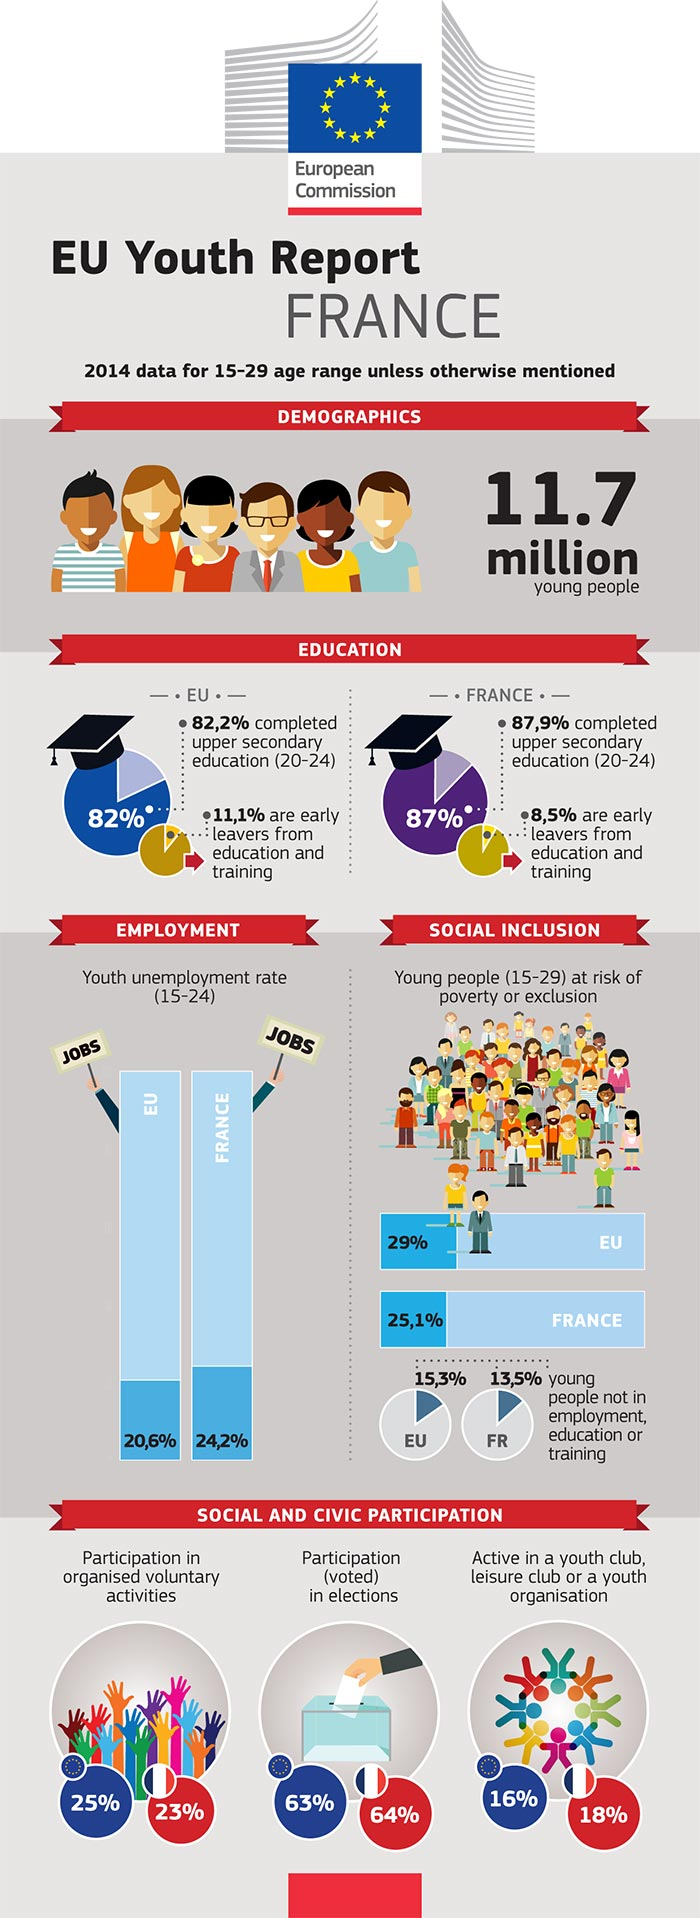 EU Youth Report infographic: France